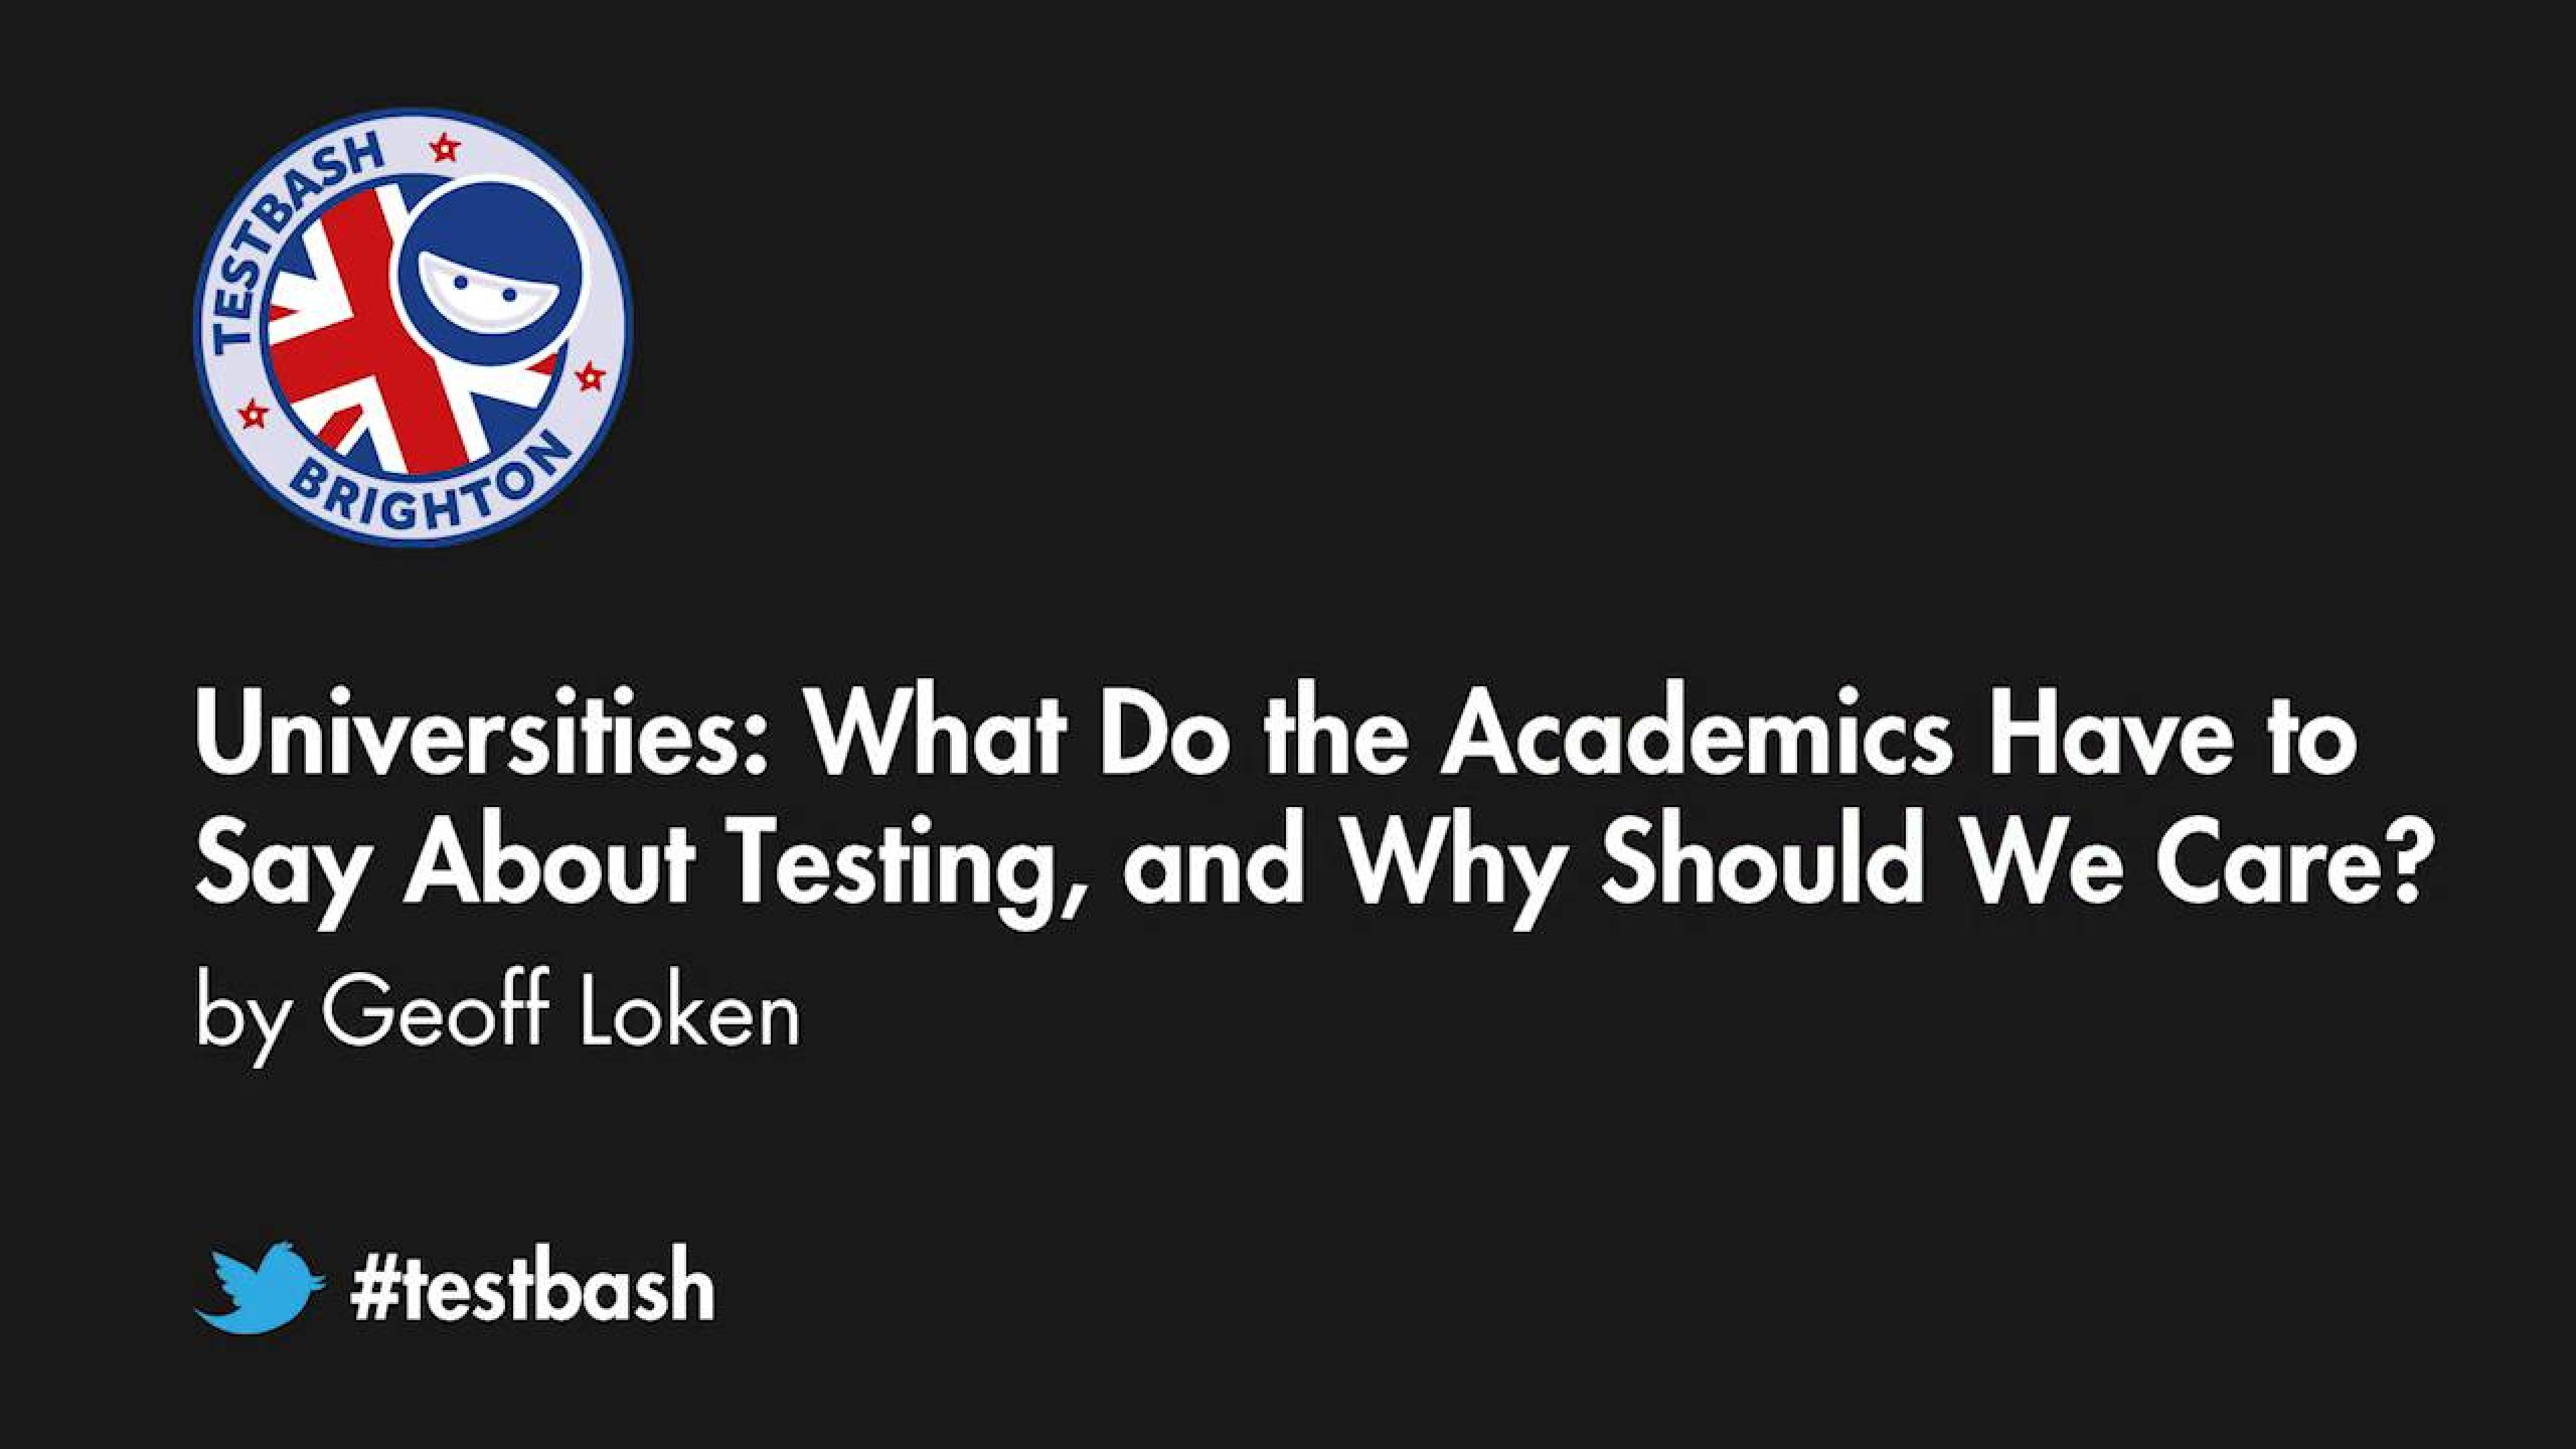 Universities: What Do The Academics Have To Say About Testing, And Why Should We Care? - Geoff Loken